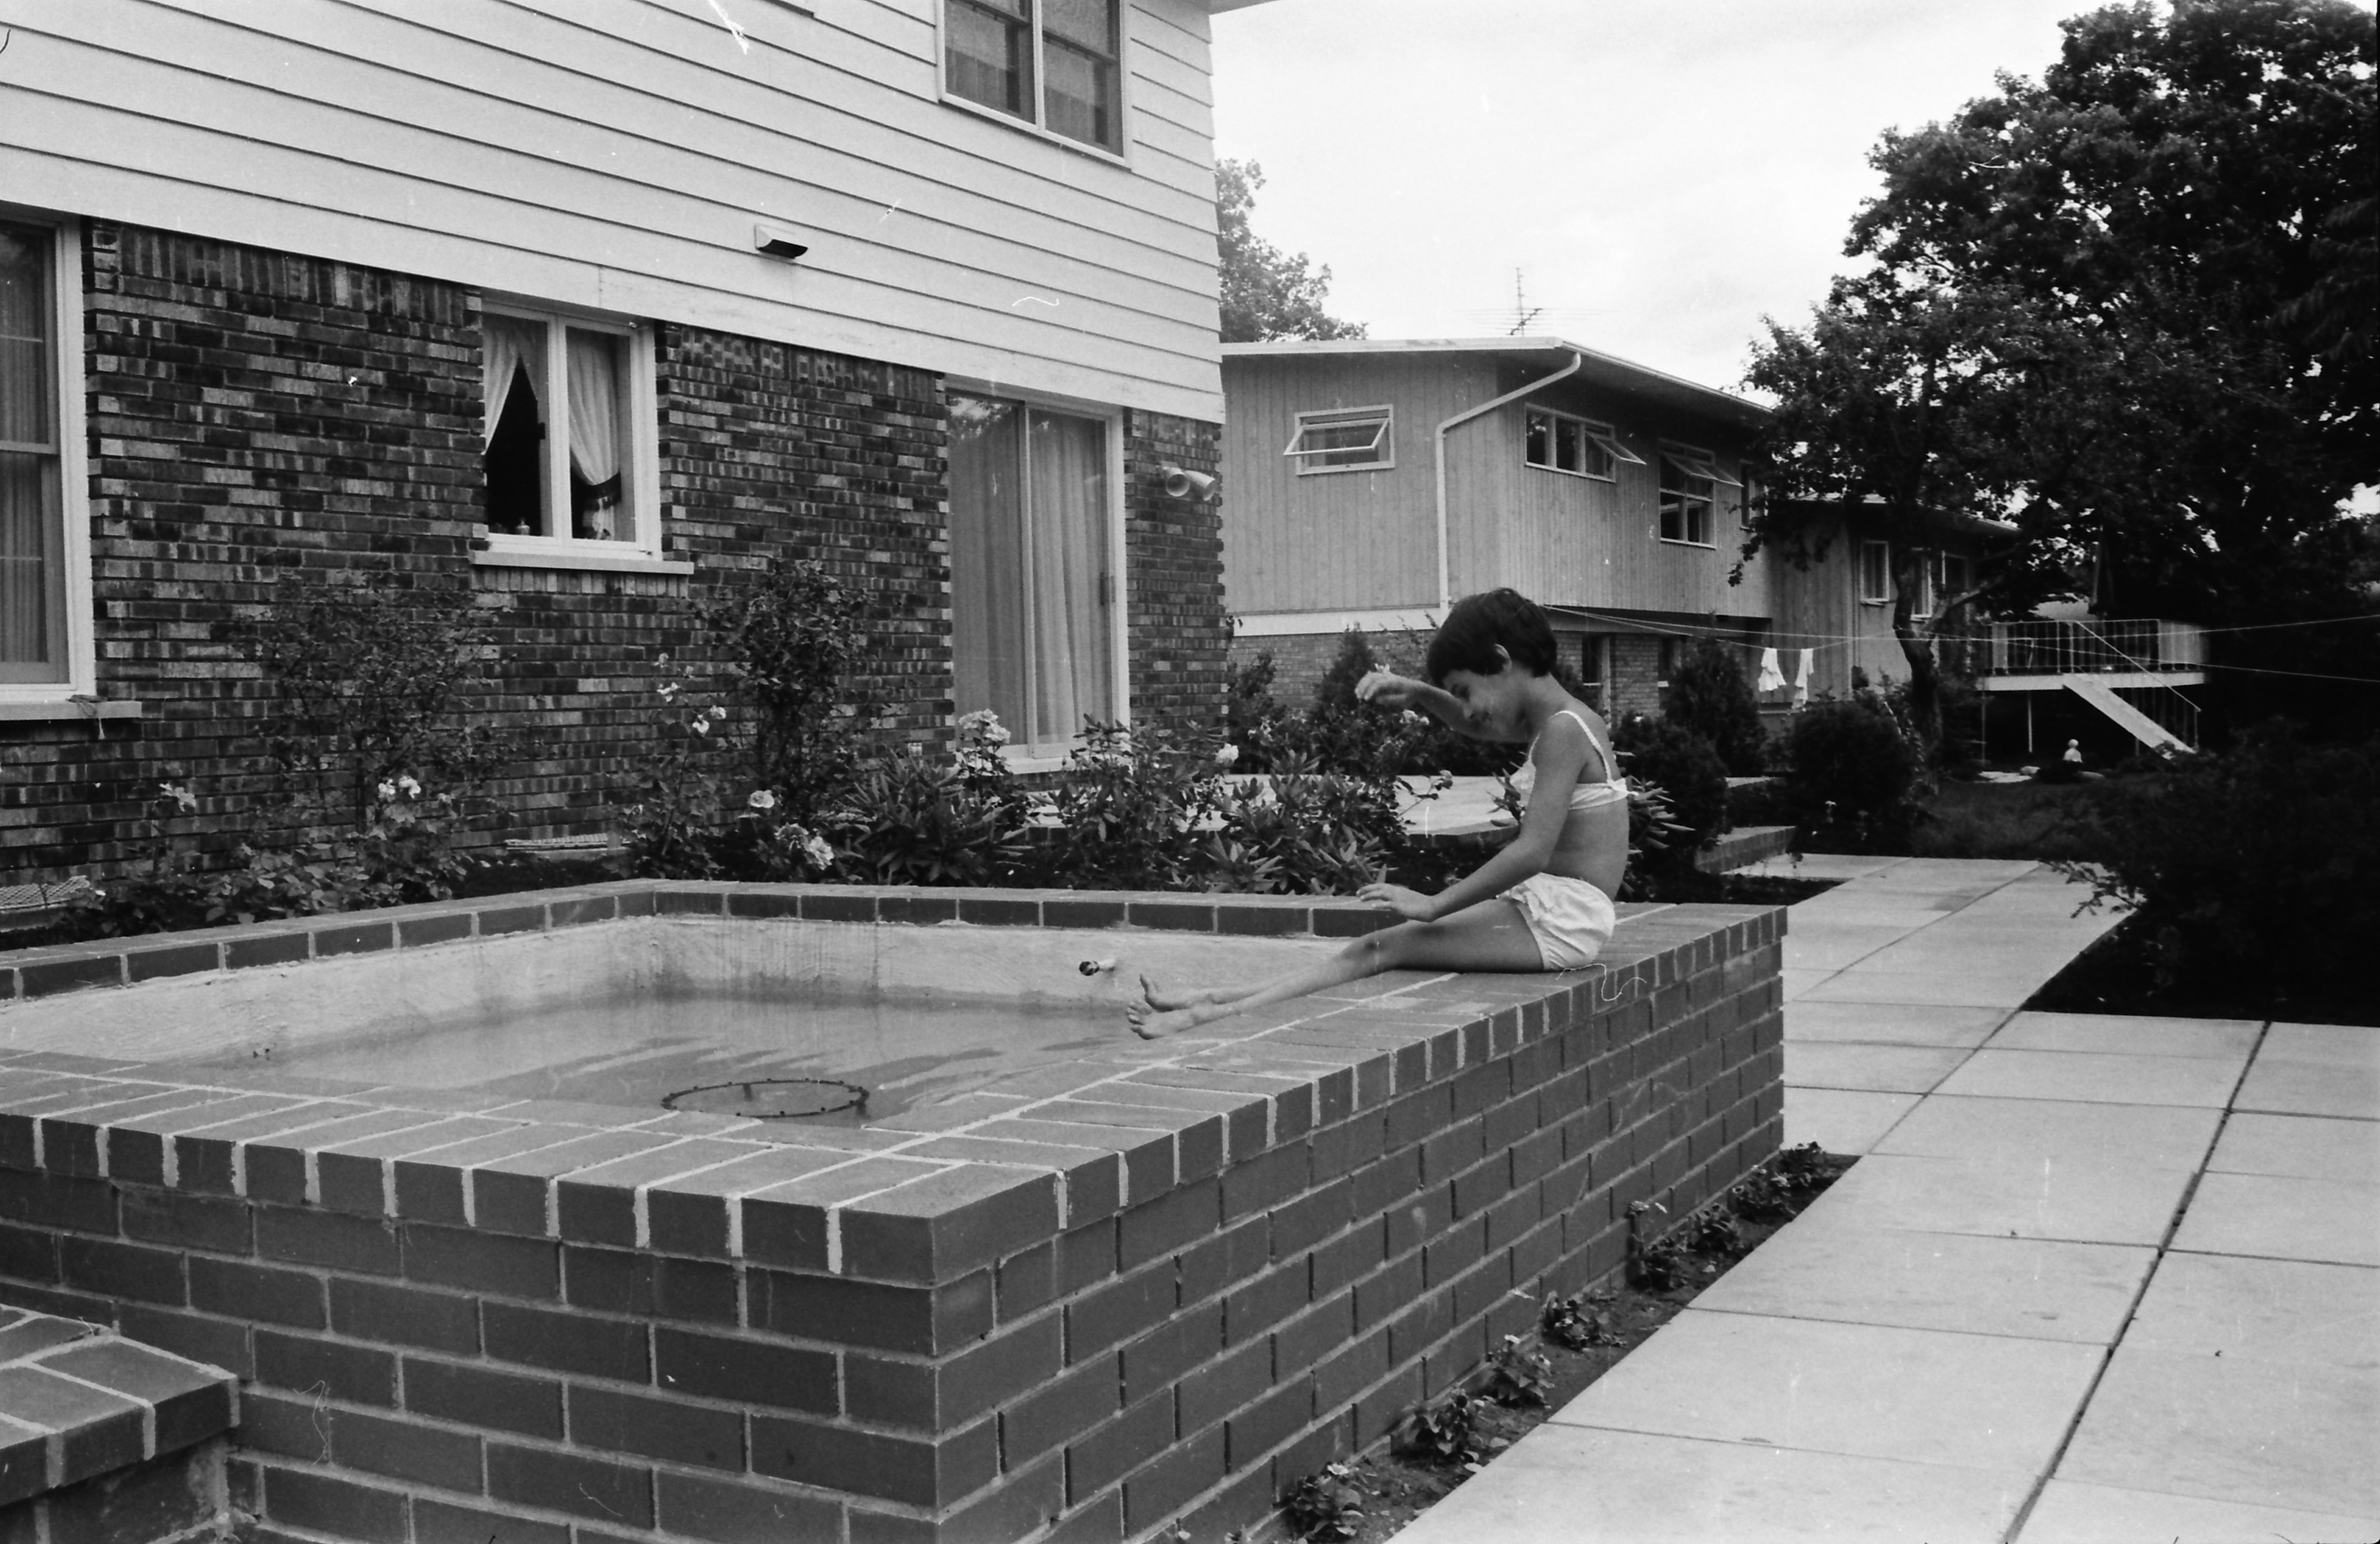 Young Child Sitting on the Edge of Small Outdoor Pool, July 1968 image